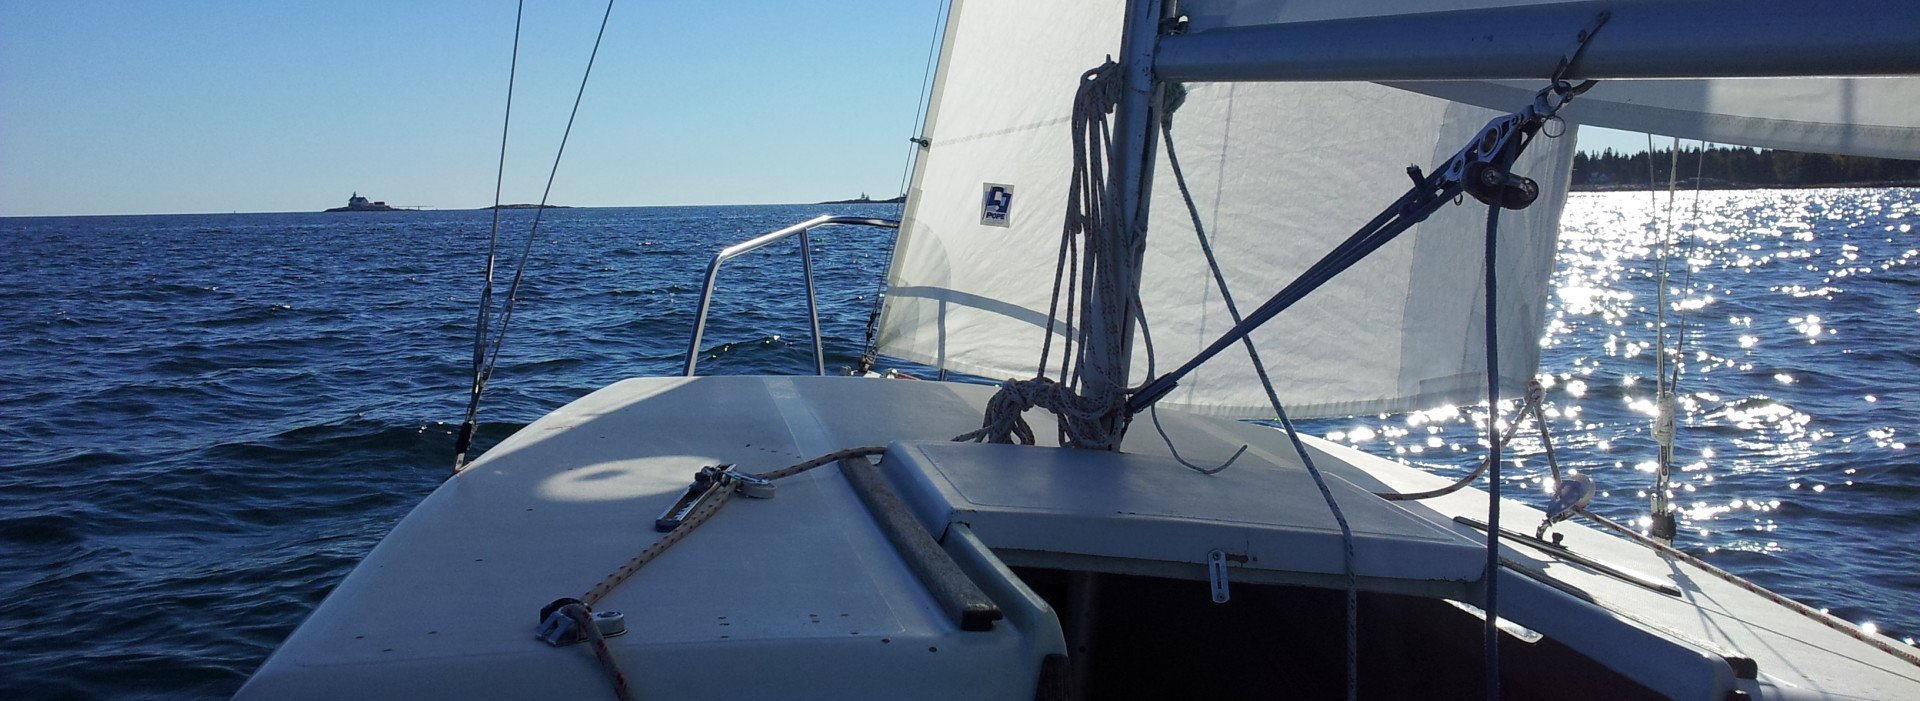 Boat Rentals on Boothbay Harbor